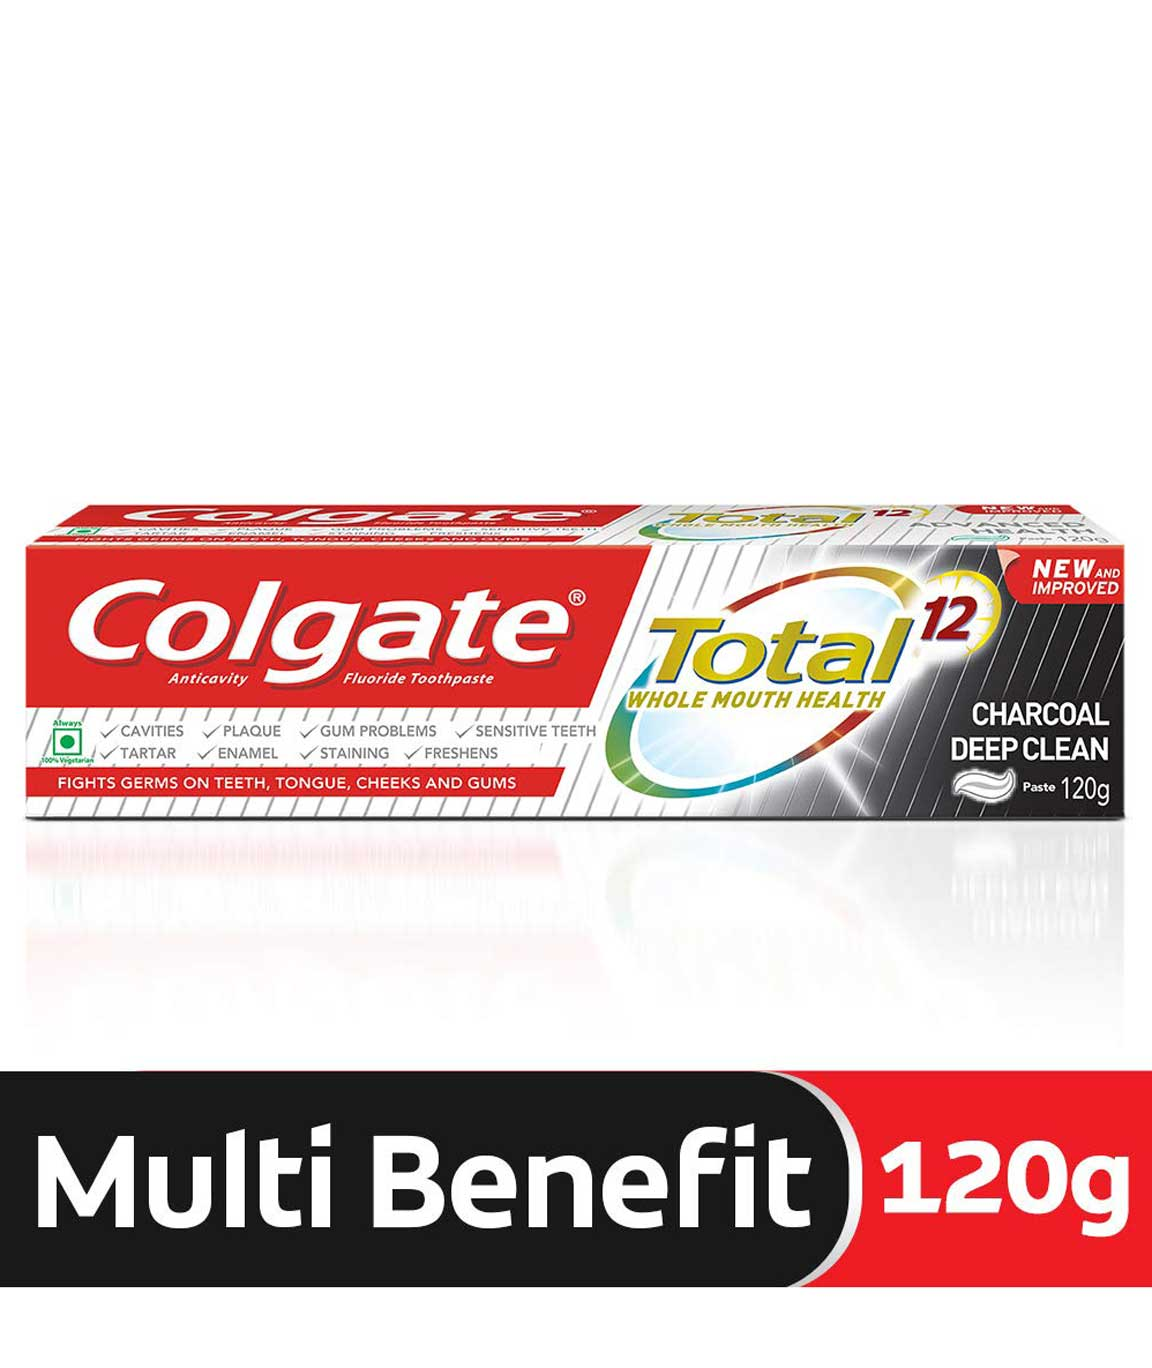 Colgate Total Charcoal Deep Clean Toothpaste - 120 g